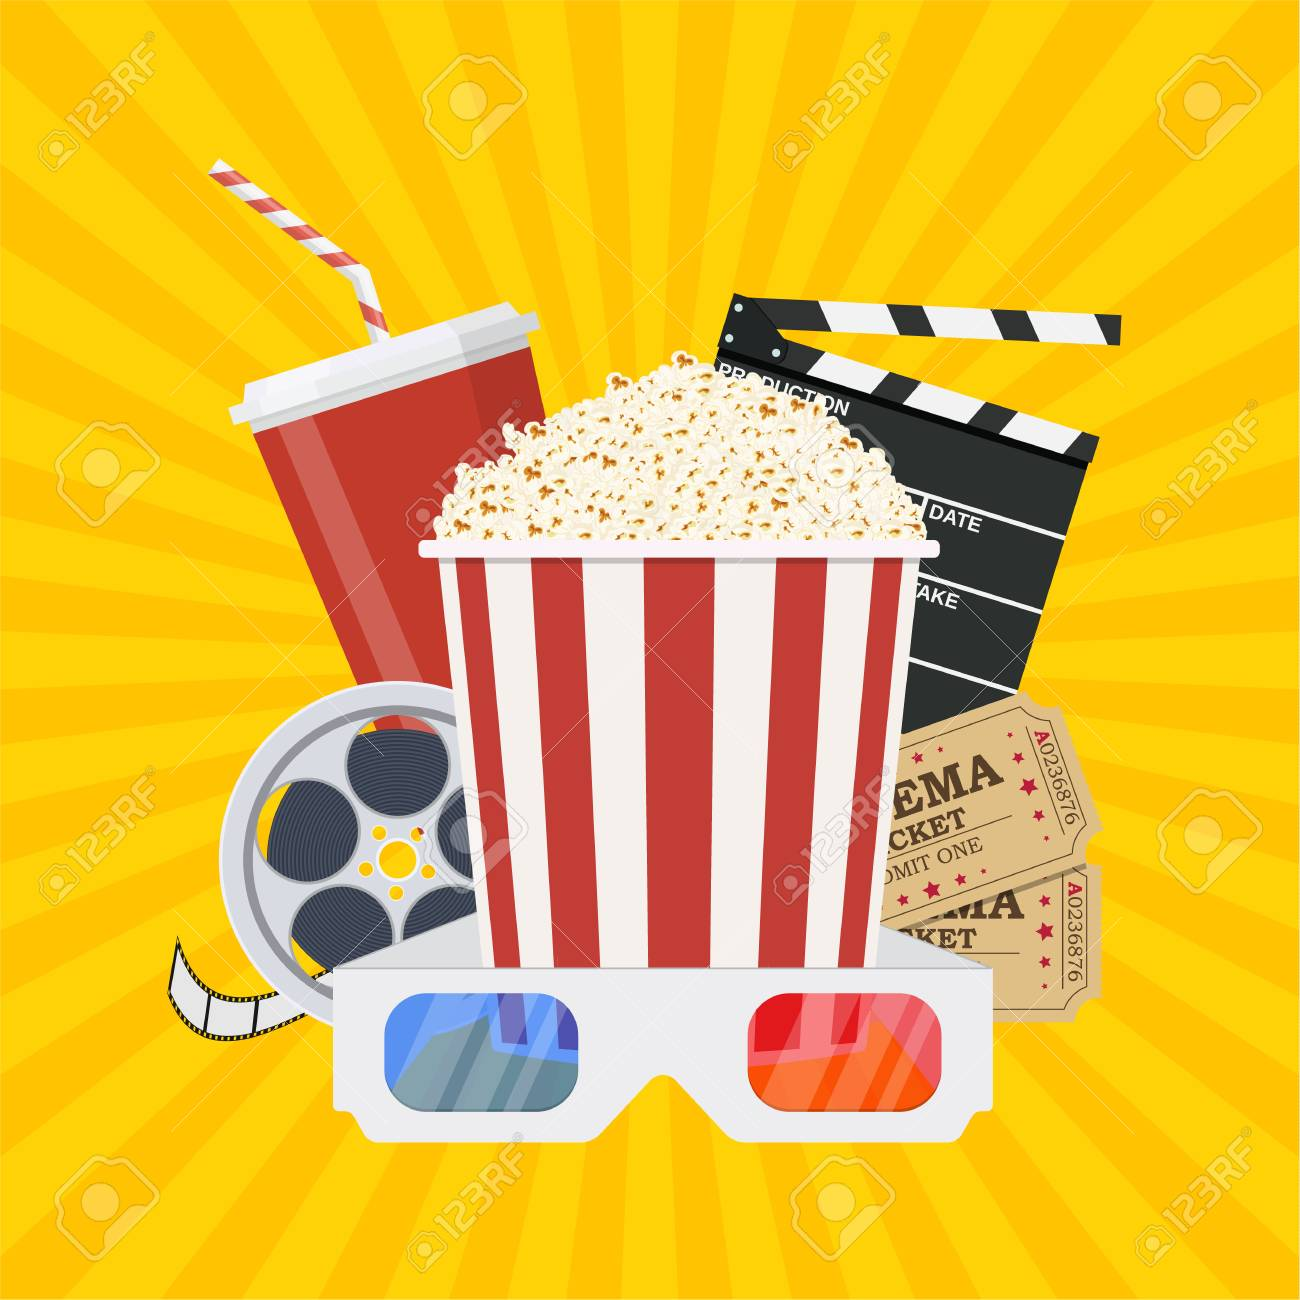 Movie Poster Template Popcorn Soda Takeaway 3d Cinema Glasses Royalty Free Cliparts Vectors And Stock Illustration Image 83745795